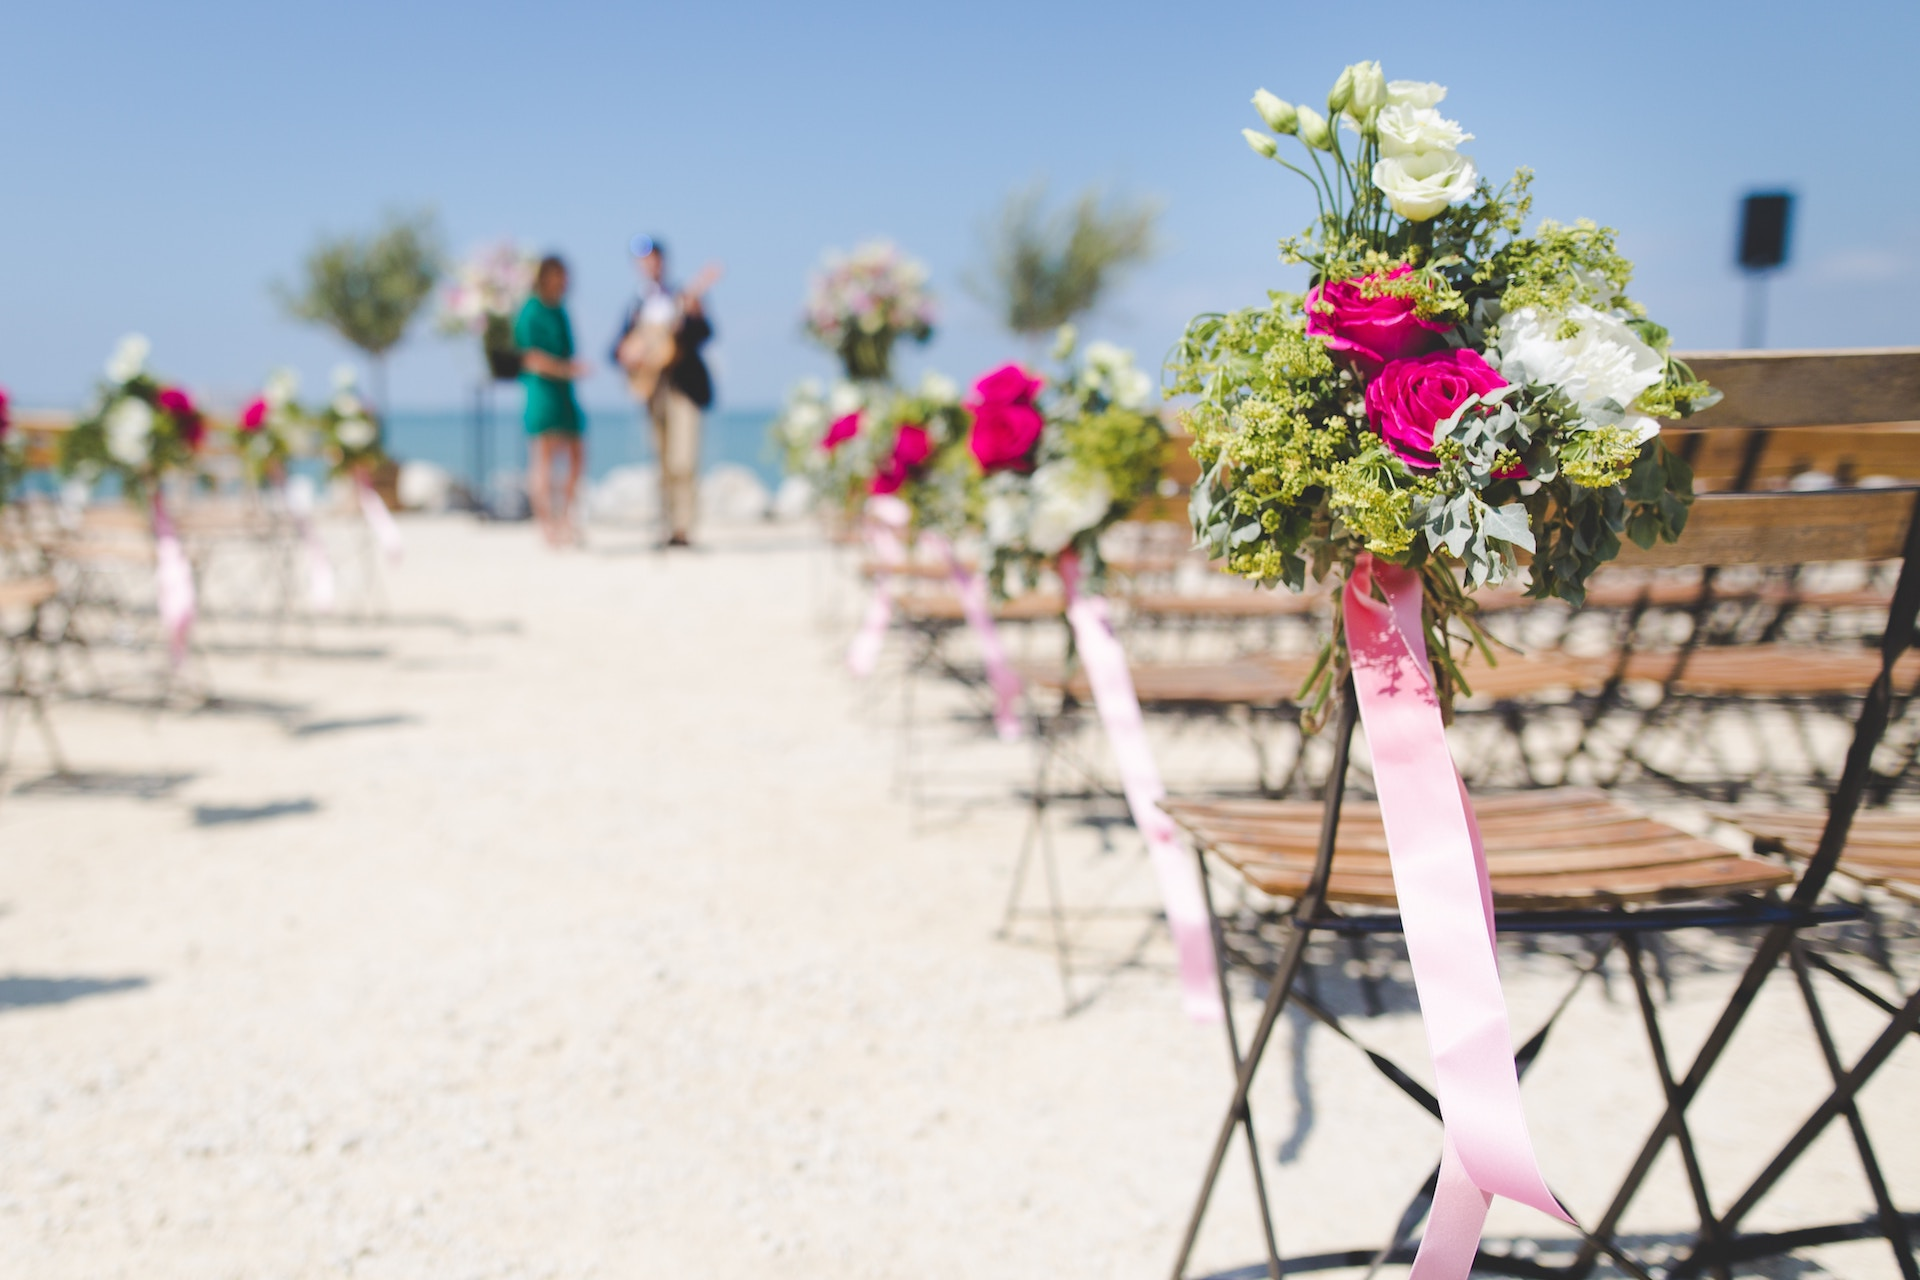 beach wedding chairs with pink and green flowers.jpg